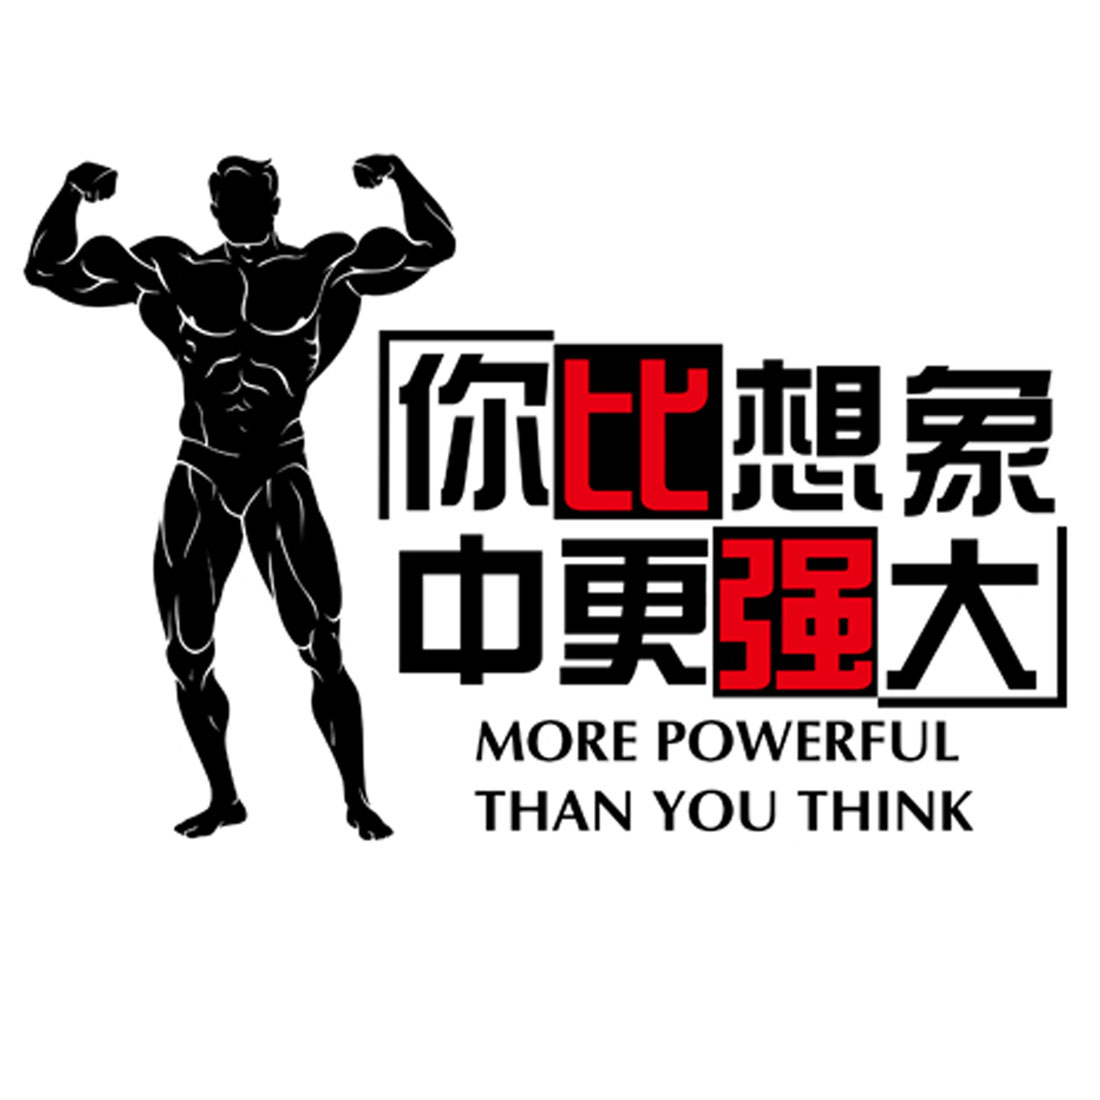 Living Room PVC Muscle Man Prints DIY Decor Wall Sticker Decal Mural 50 x 70cm